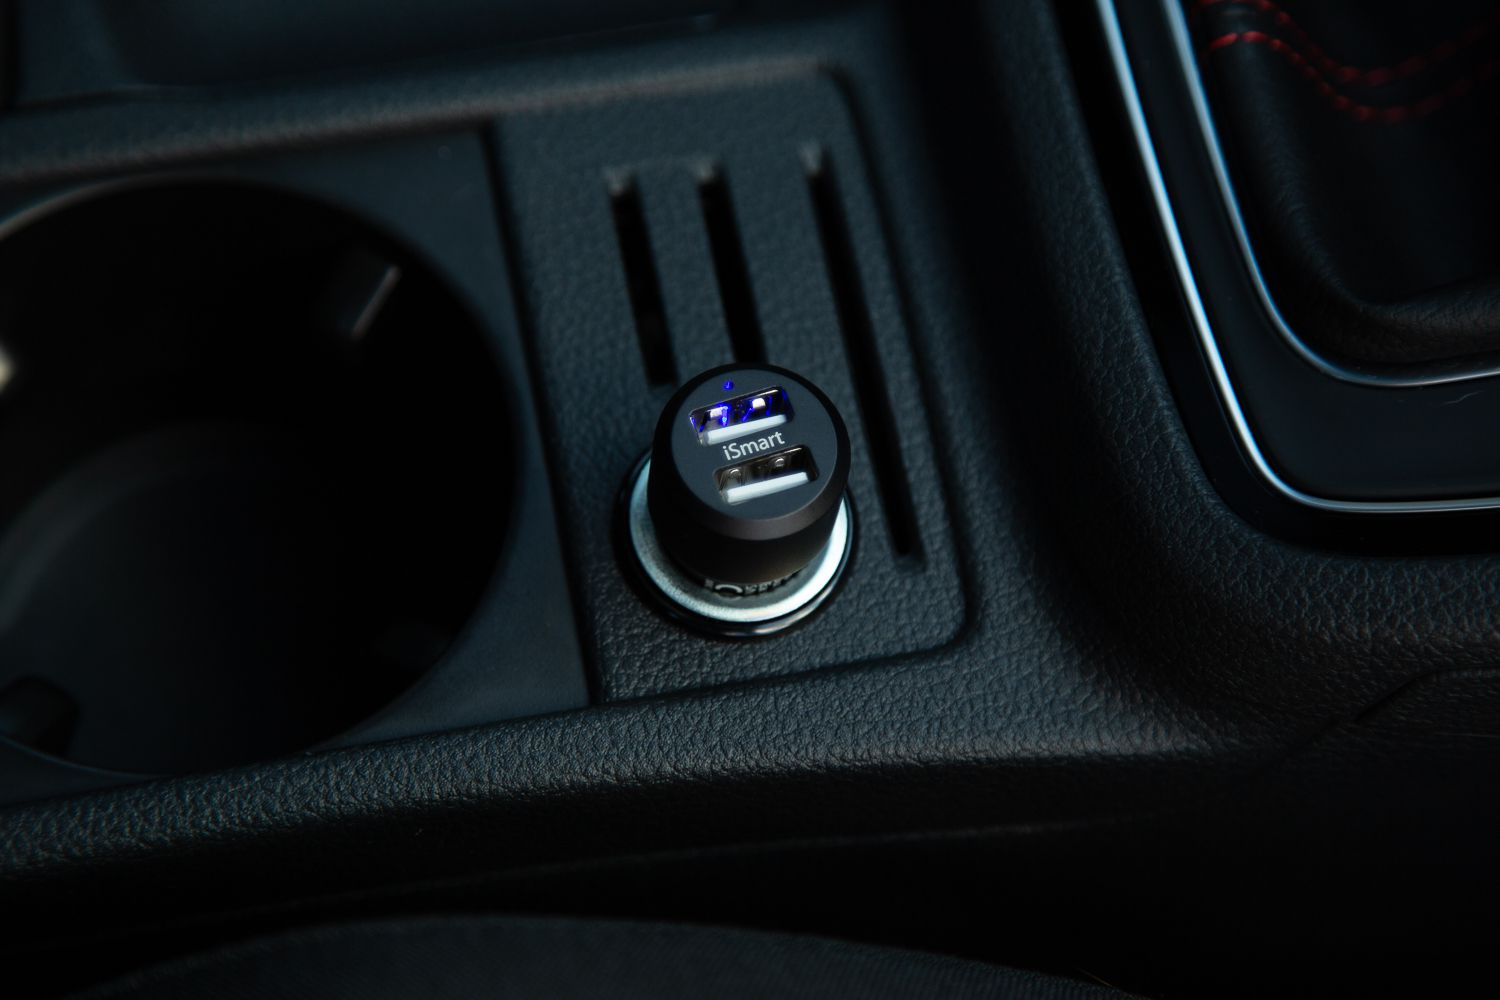 RAVPower 24W USB Car Charger